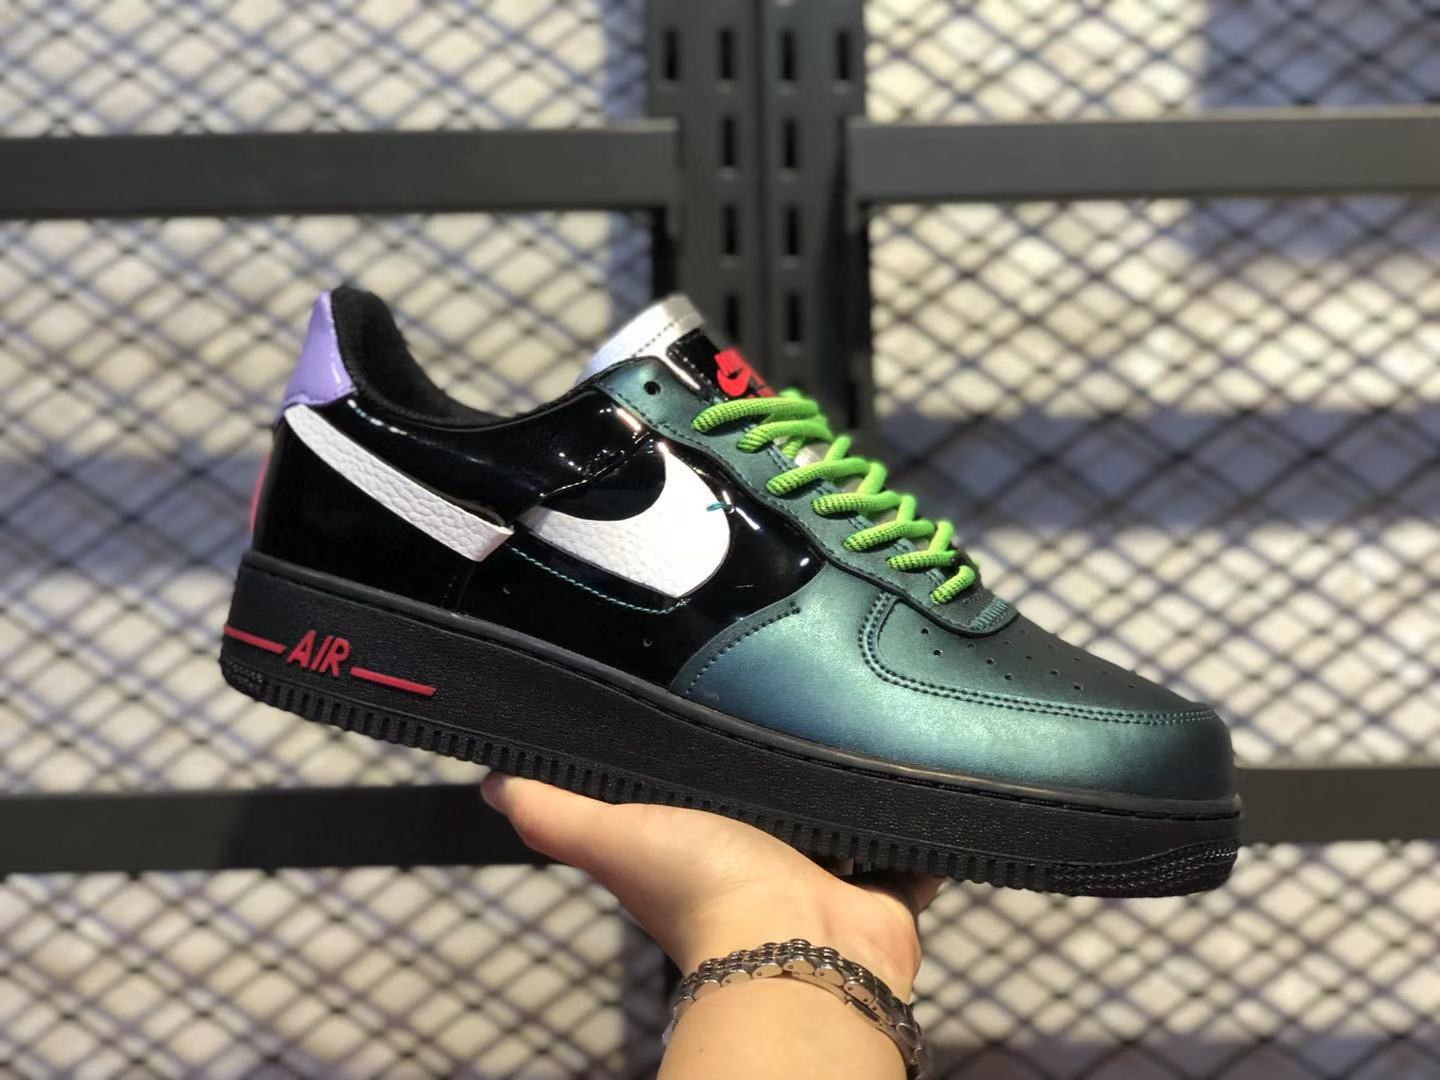 Nike Air Force 1 Vandalized CT7359-001 High Quality Skate Boarding Shoes